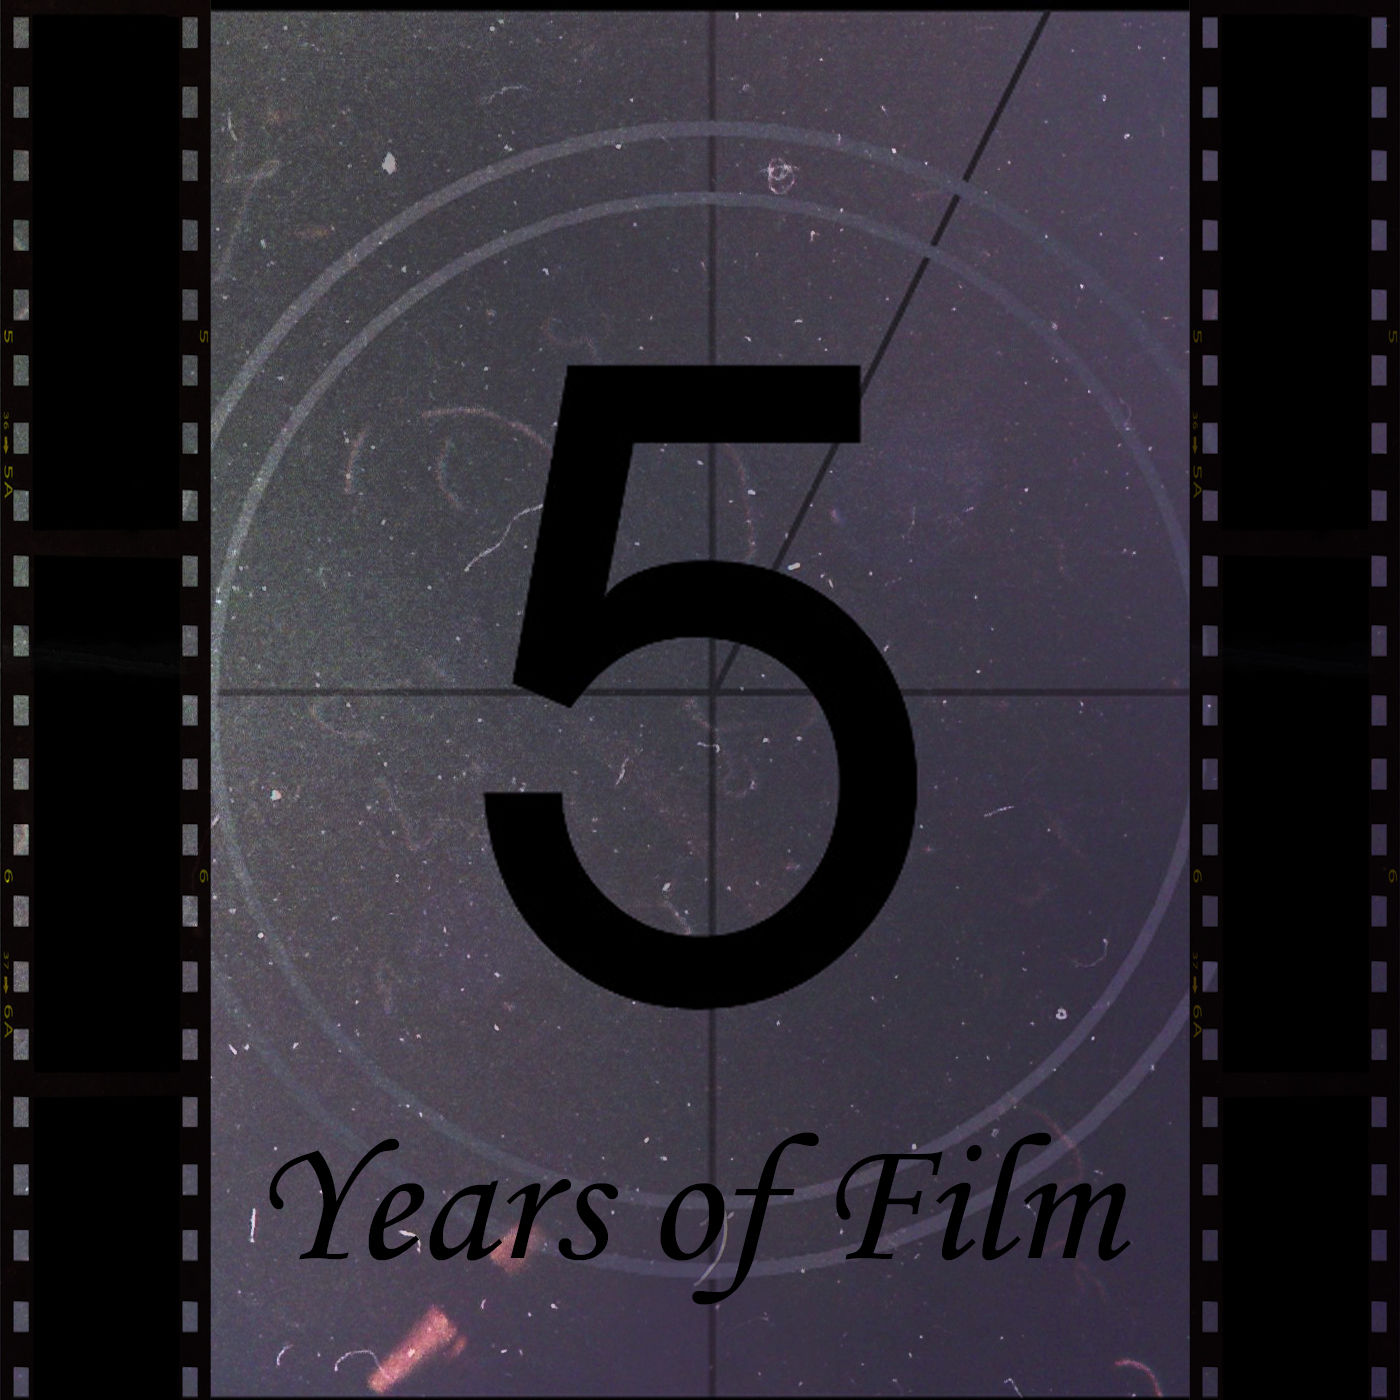 Five Years of Film